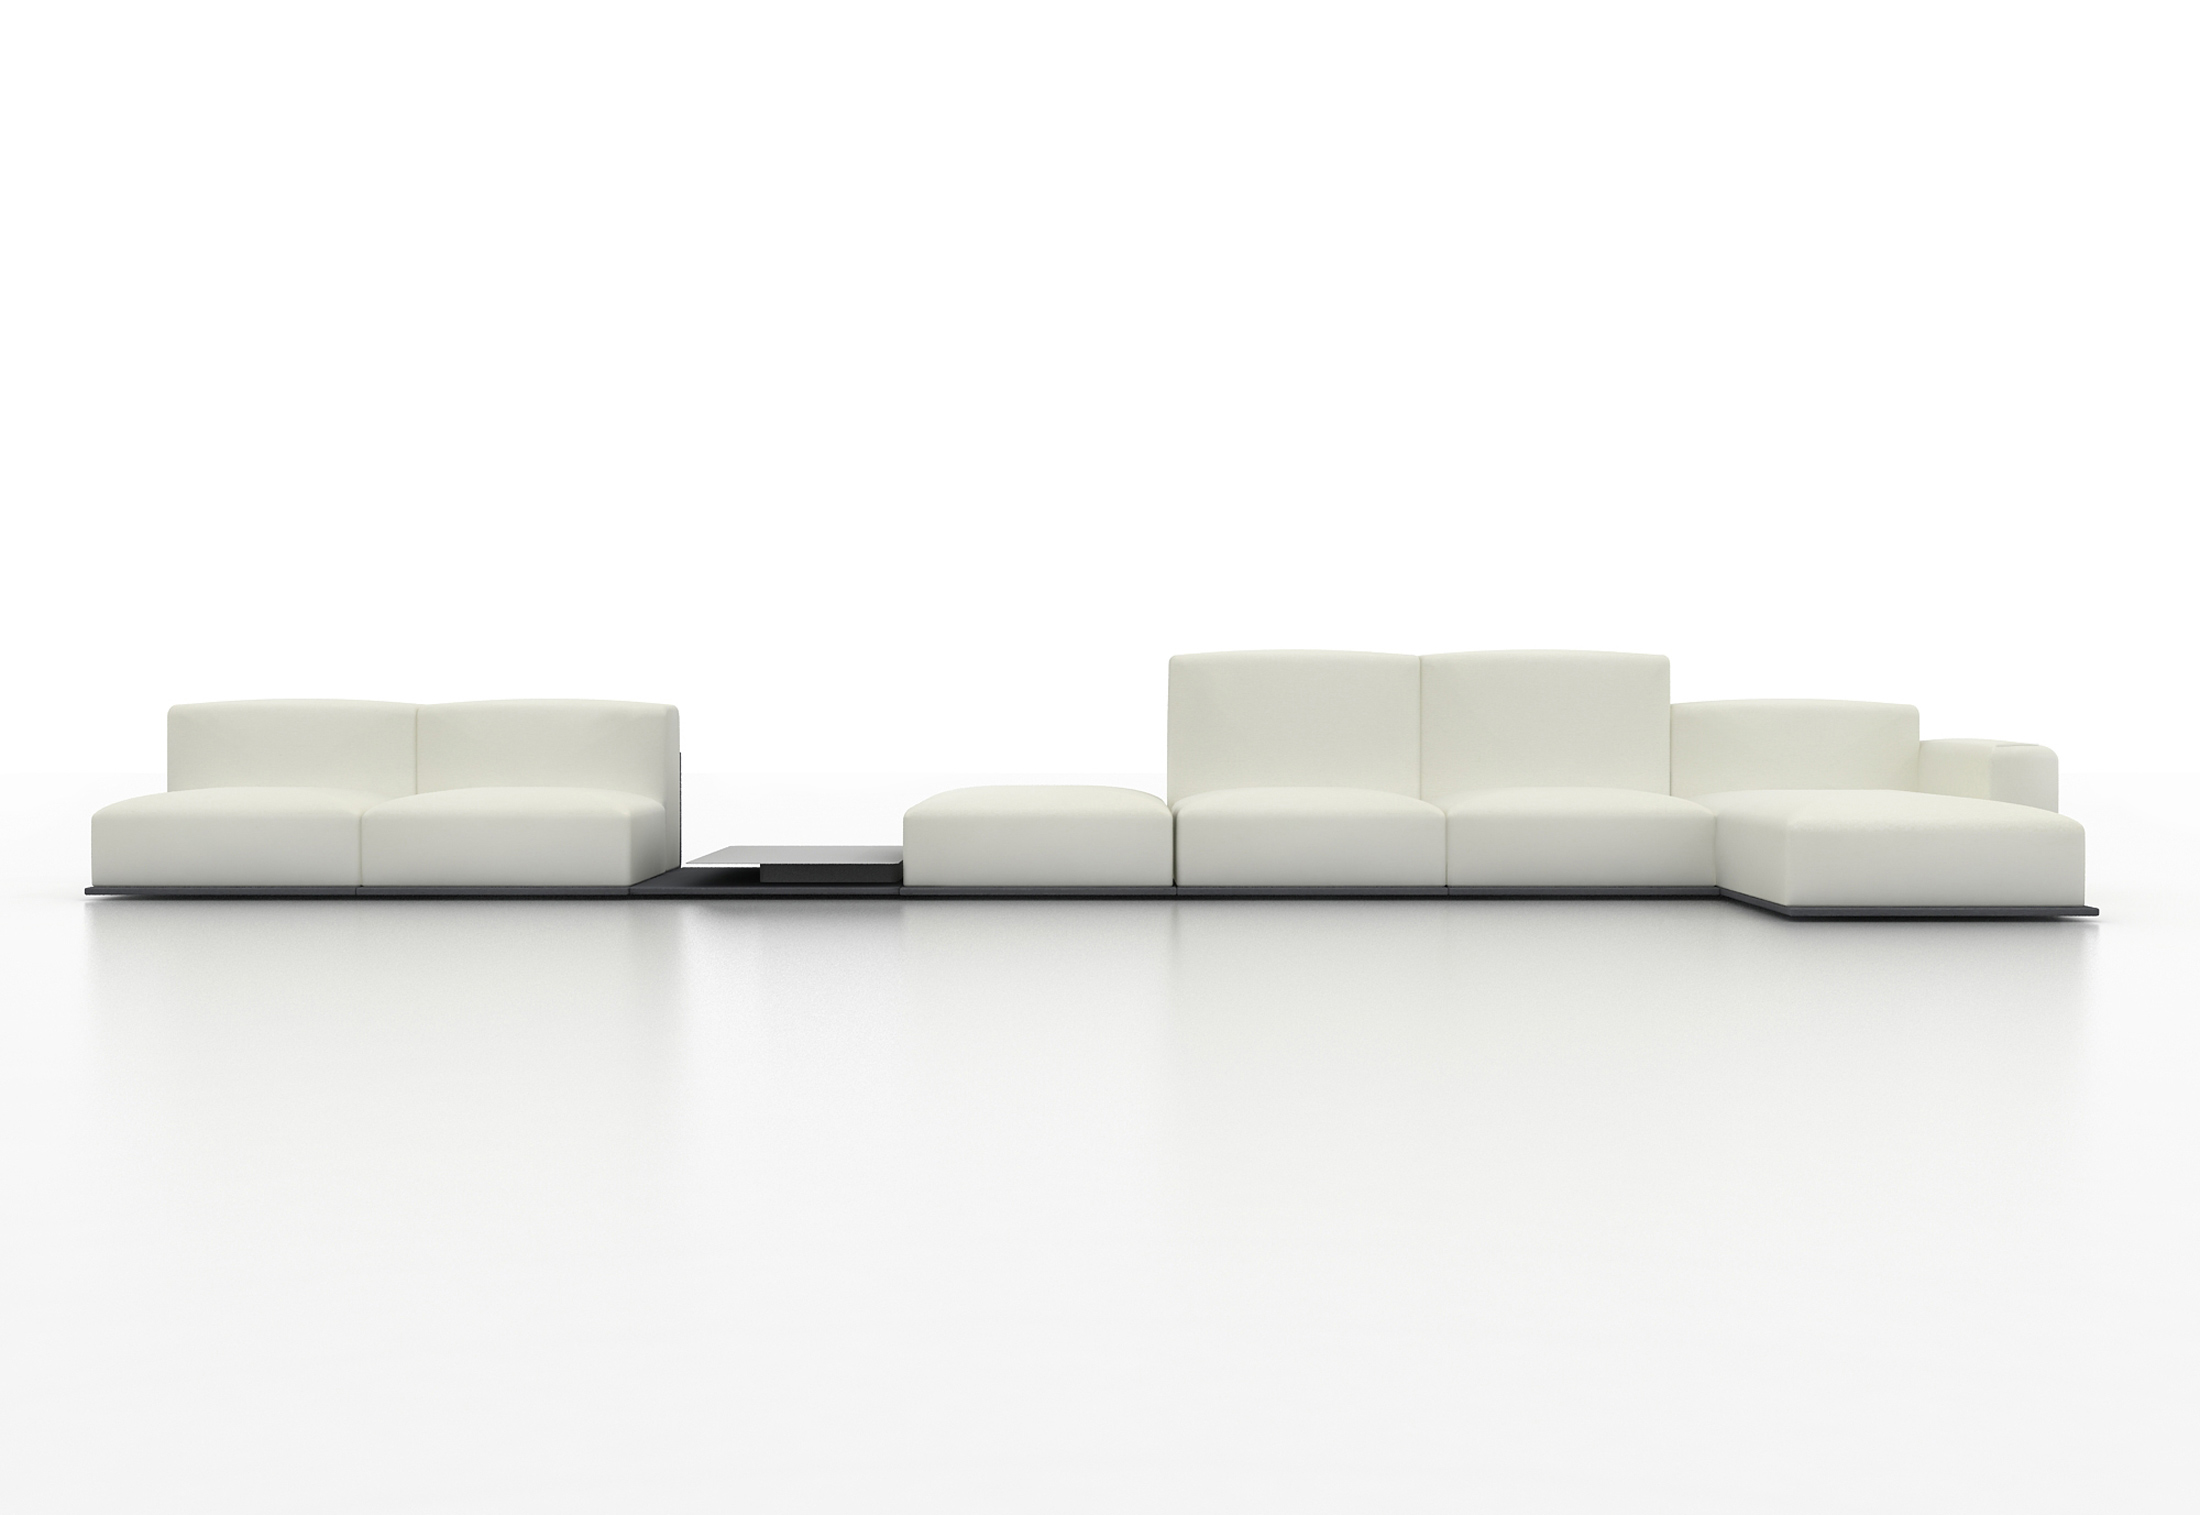 modular sofa by Victor Carrasco